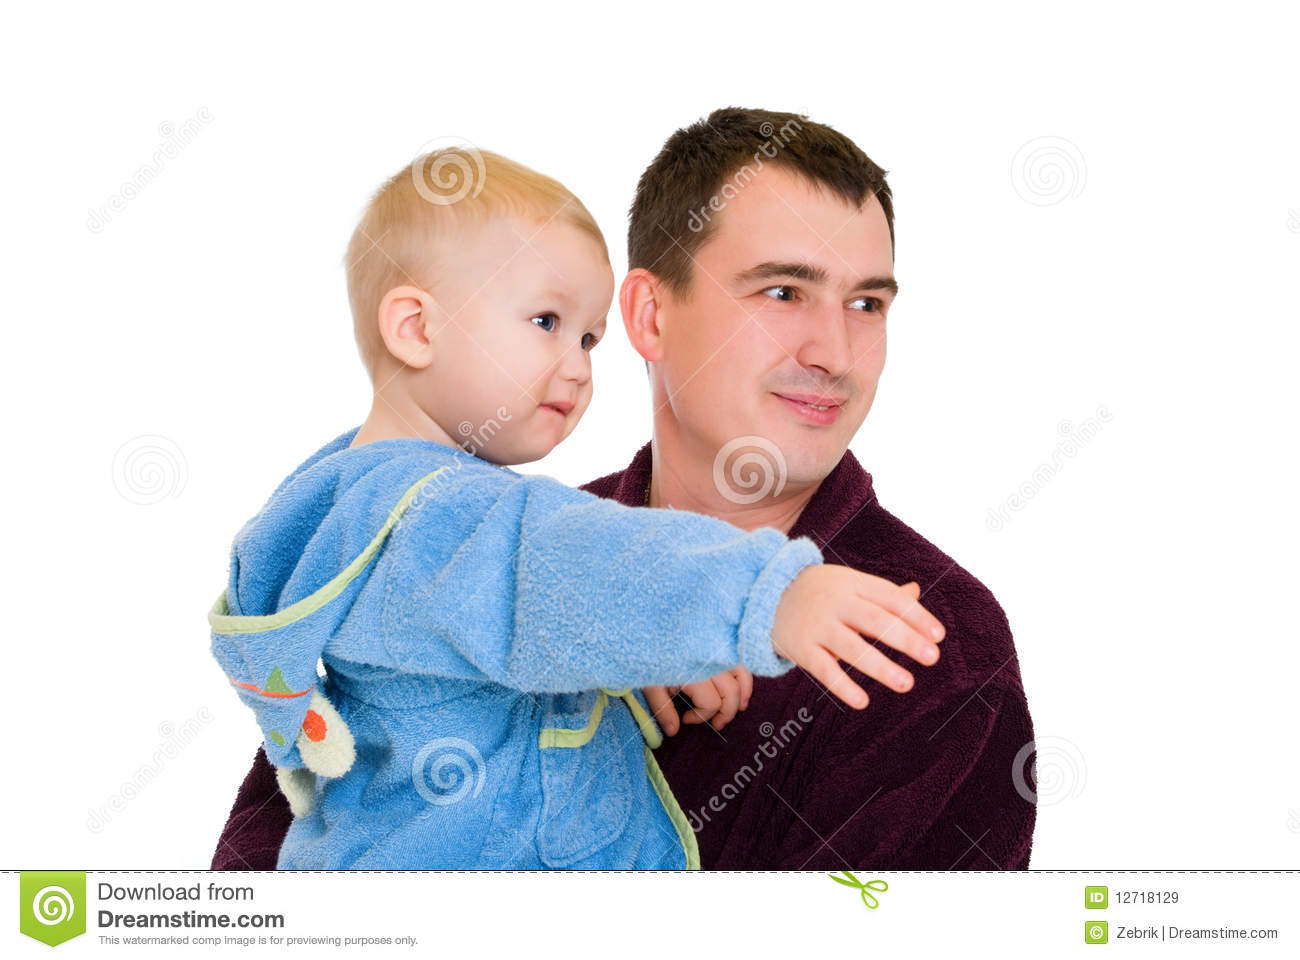 Man And Baby Dressing Gown Royalty Free Stock Images